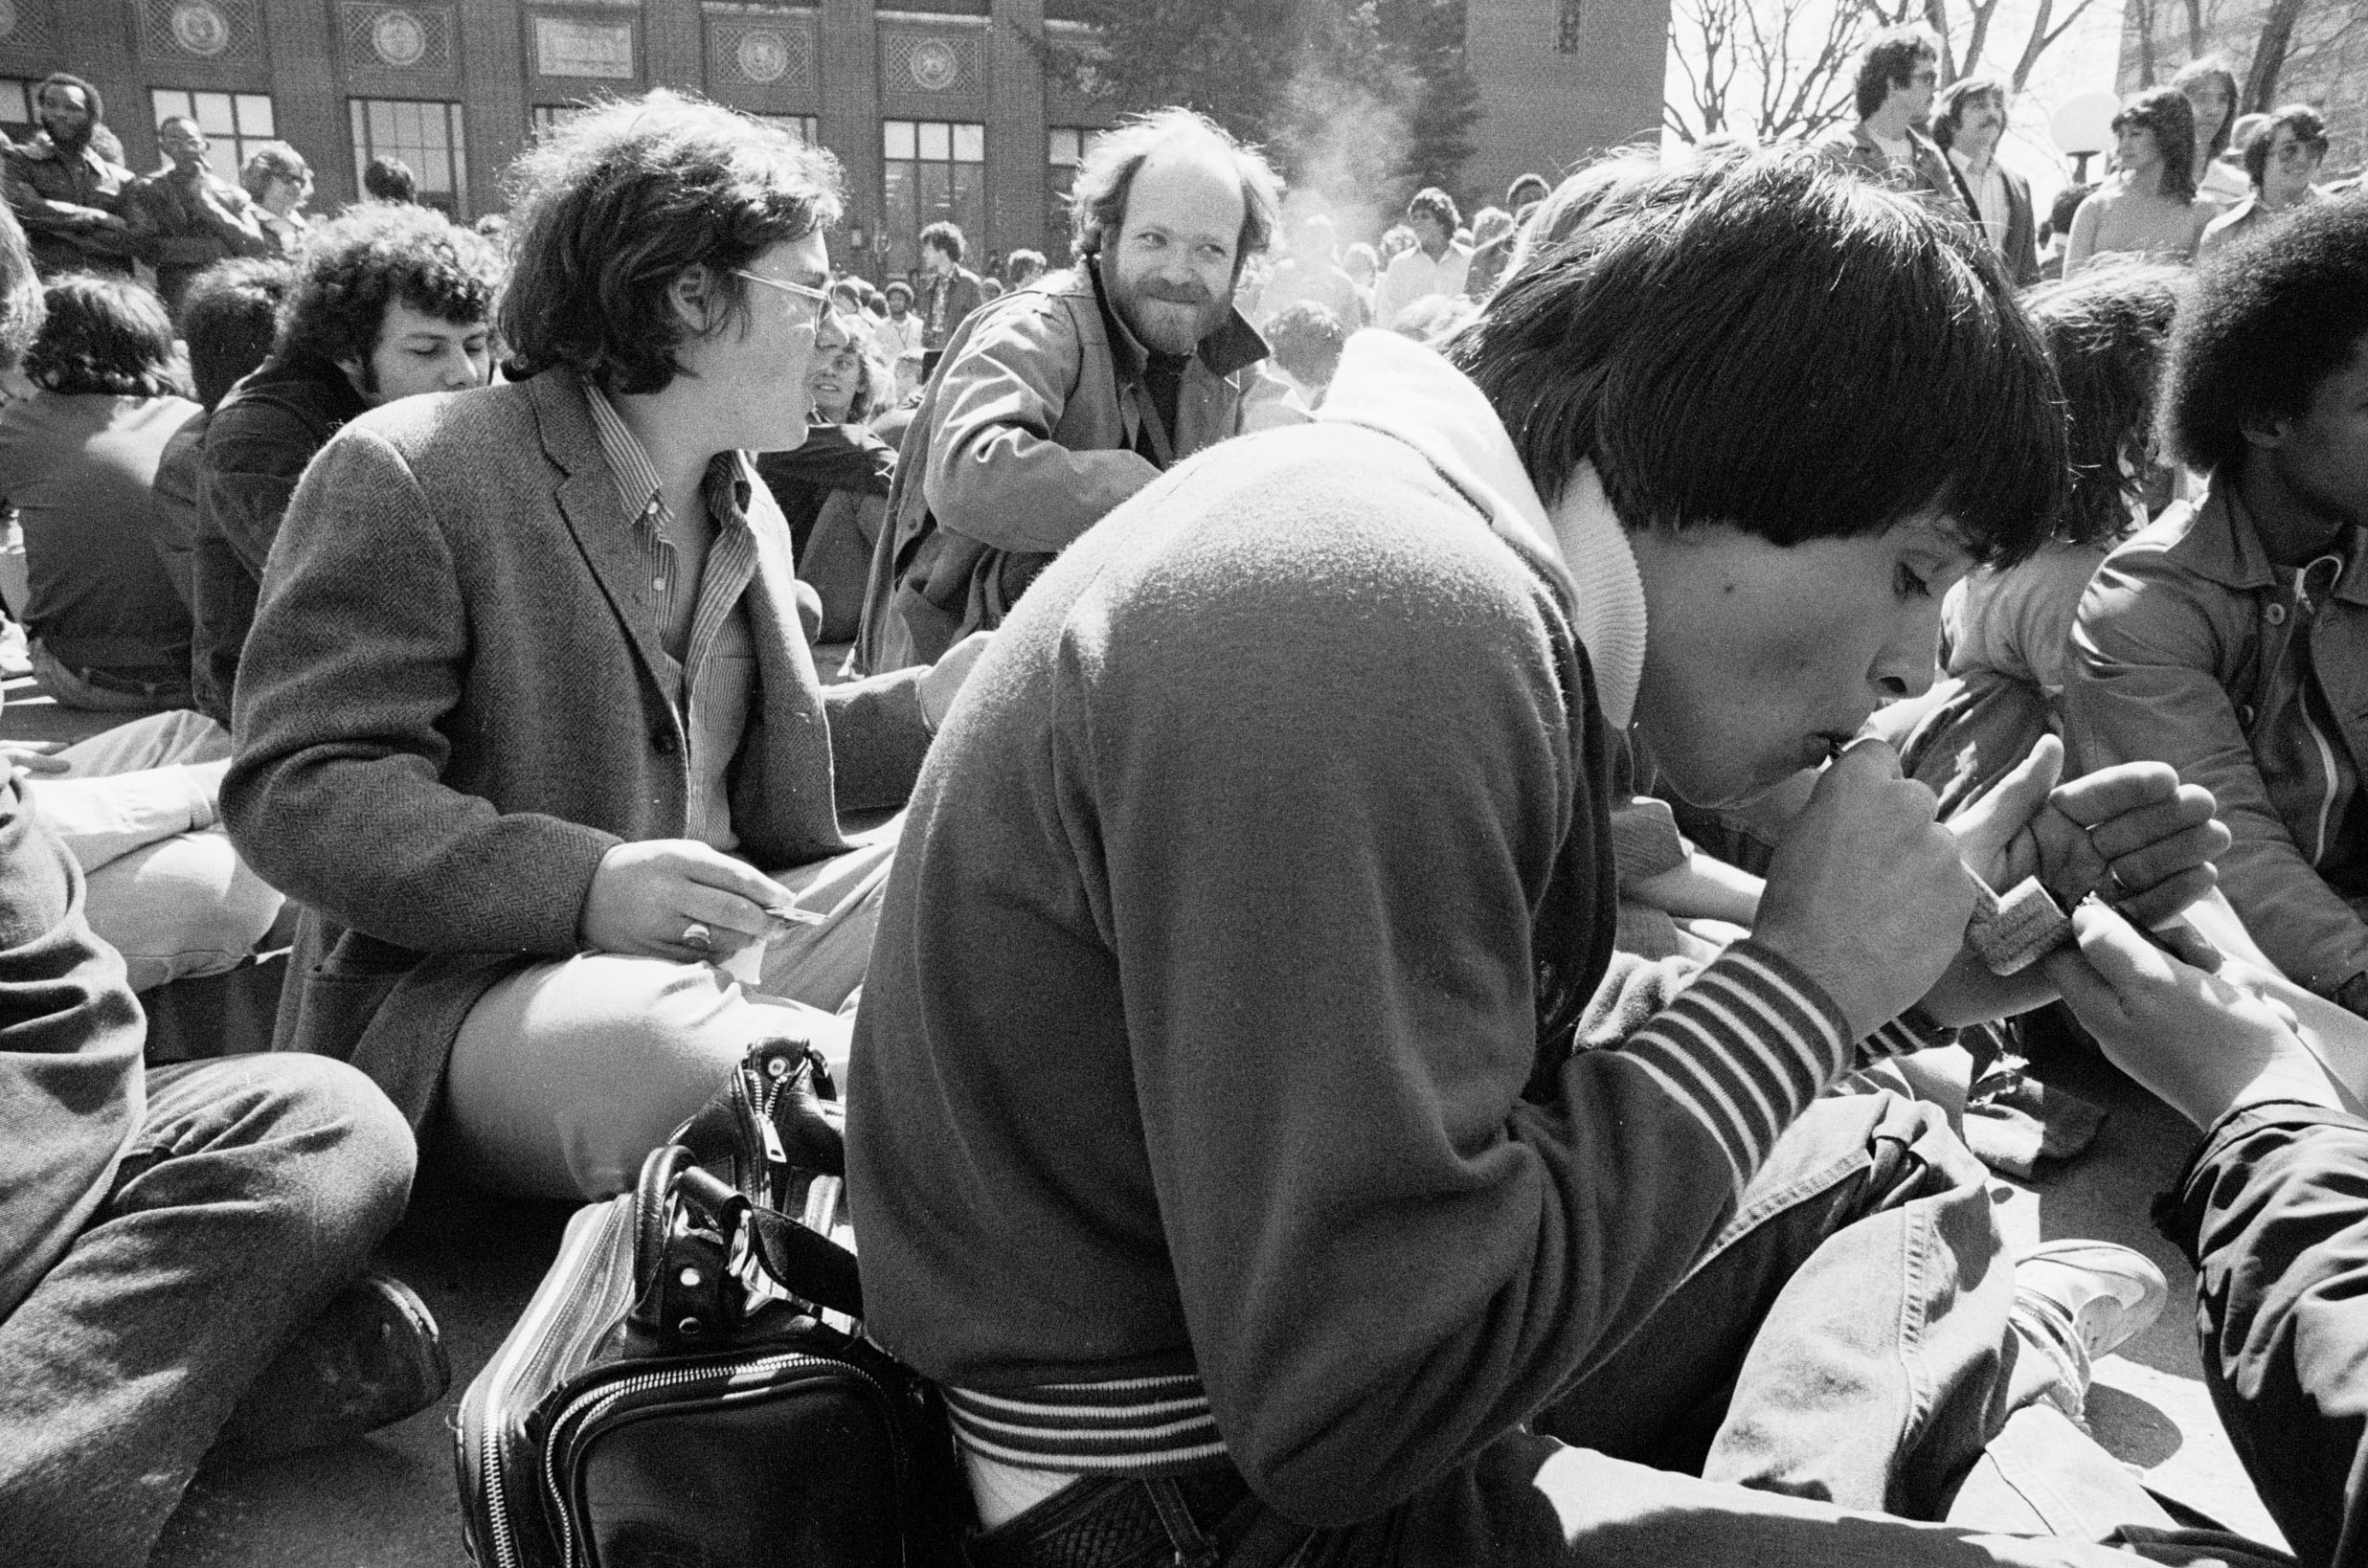 Ann Arbor Hash Bash, April 1979 image